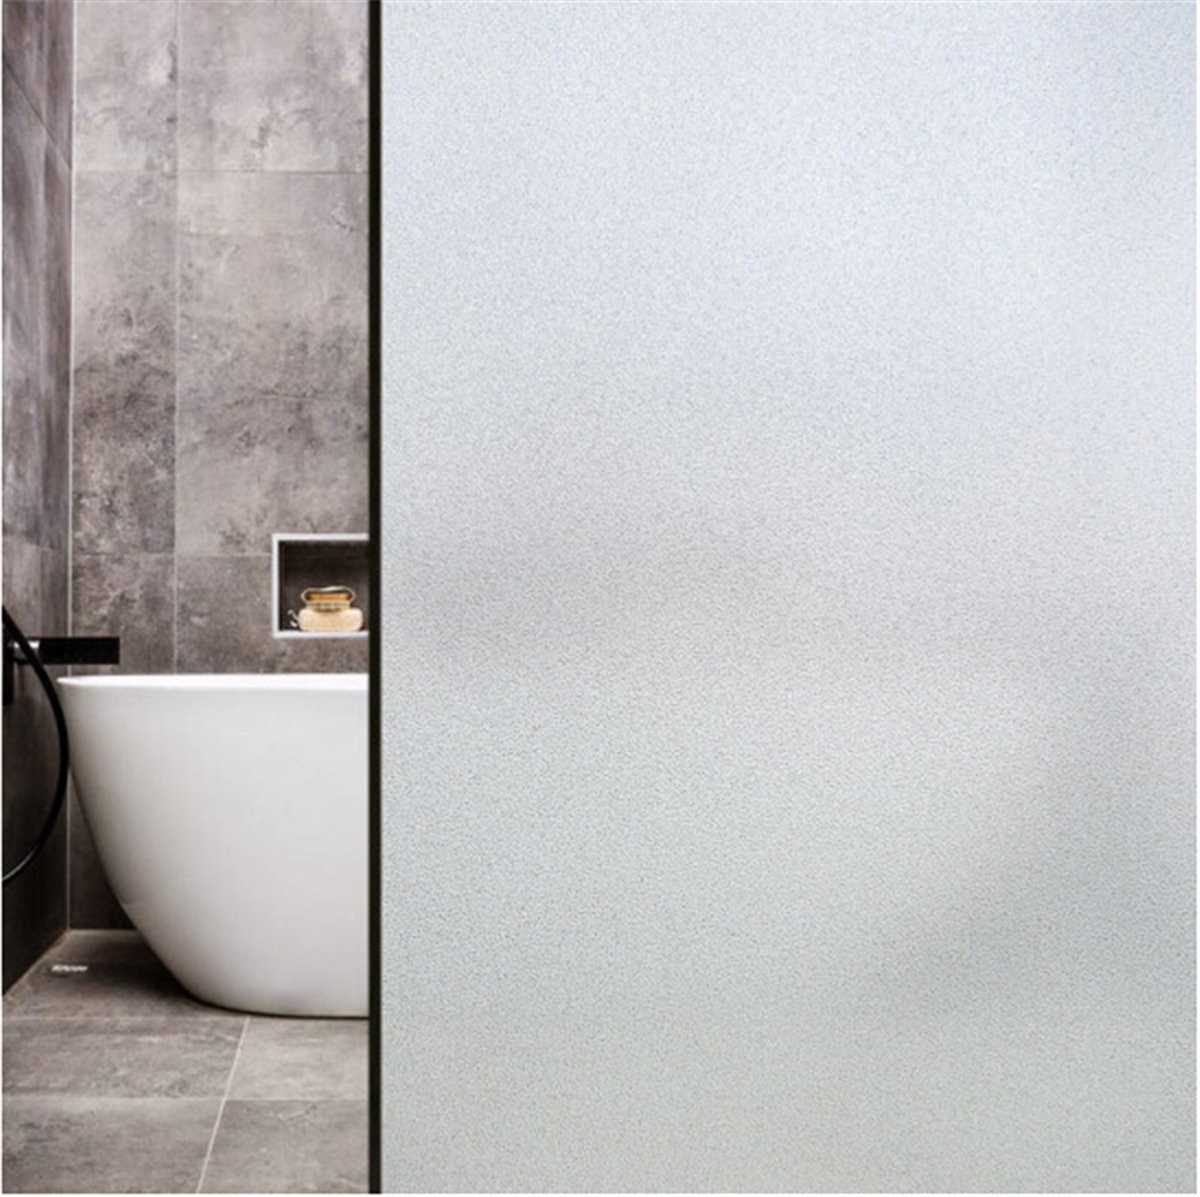 Window Film Non Adhesive Frosted Privacy Window Film Self Static Cling Vinly Privacy Window Film Matte White Window Film Both for Home Bathroom Office Meeting Room and Living Room ( 35.4x78.7 Inch)